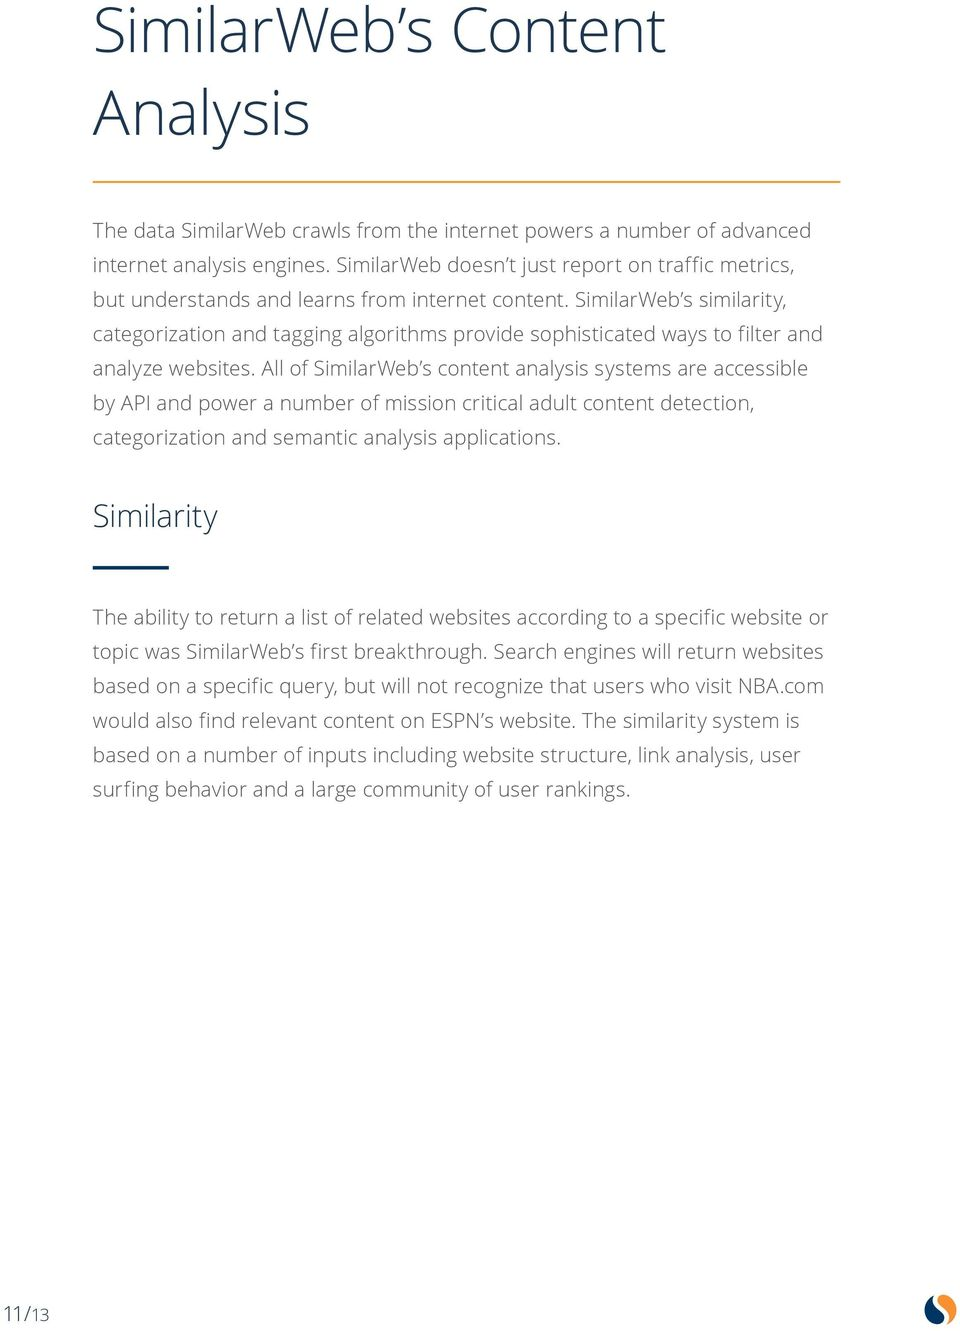 SimilarWeb s similarity, categorization and tagging algorithms provide sophisticated ways to filter and analyze websites.